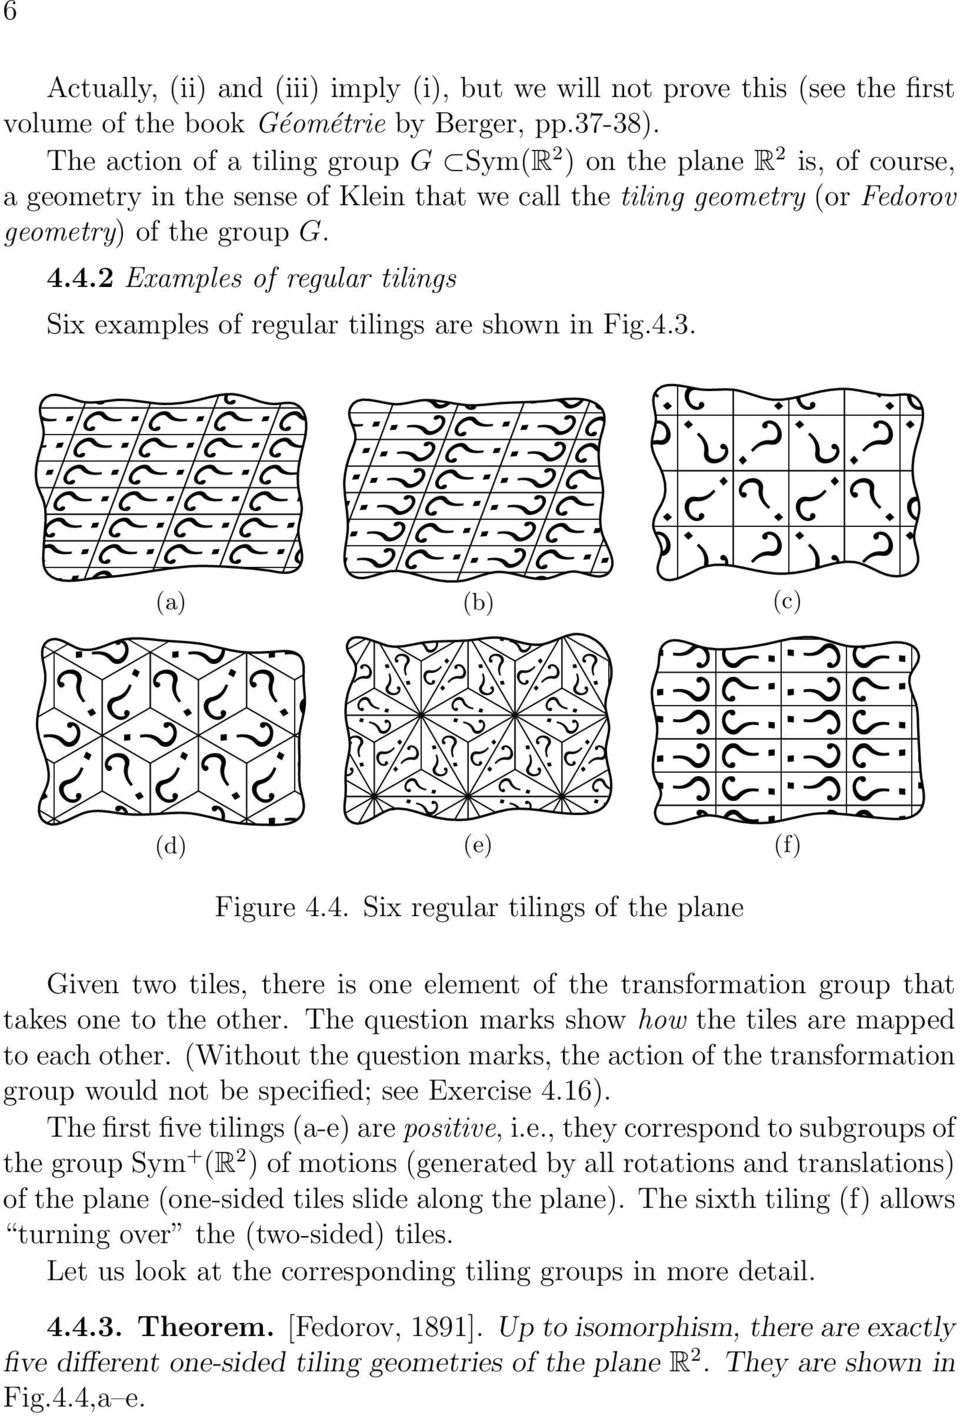 4.2 Examples of regular tilings Six examples of regular tilings are shown in Fig.4.3. (a) (b) (c) (d) (e) (f) Figure 4.4. Six regular tilings of the plane Given two tiles, there is one element of the transformation group that takes one to the other.